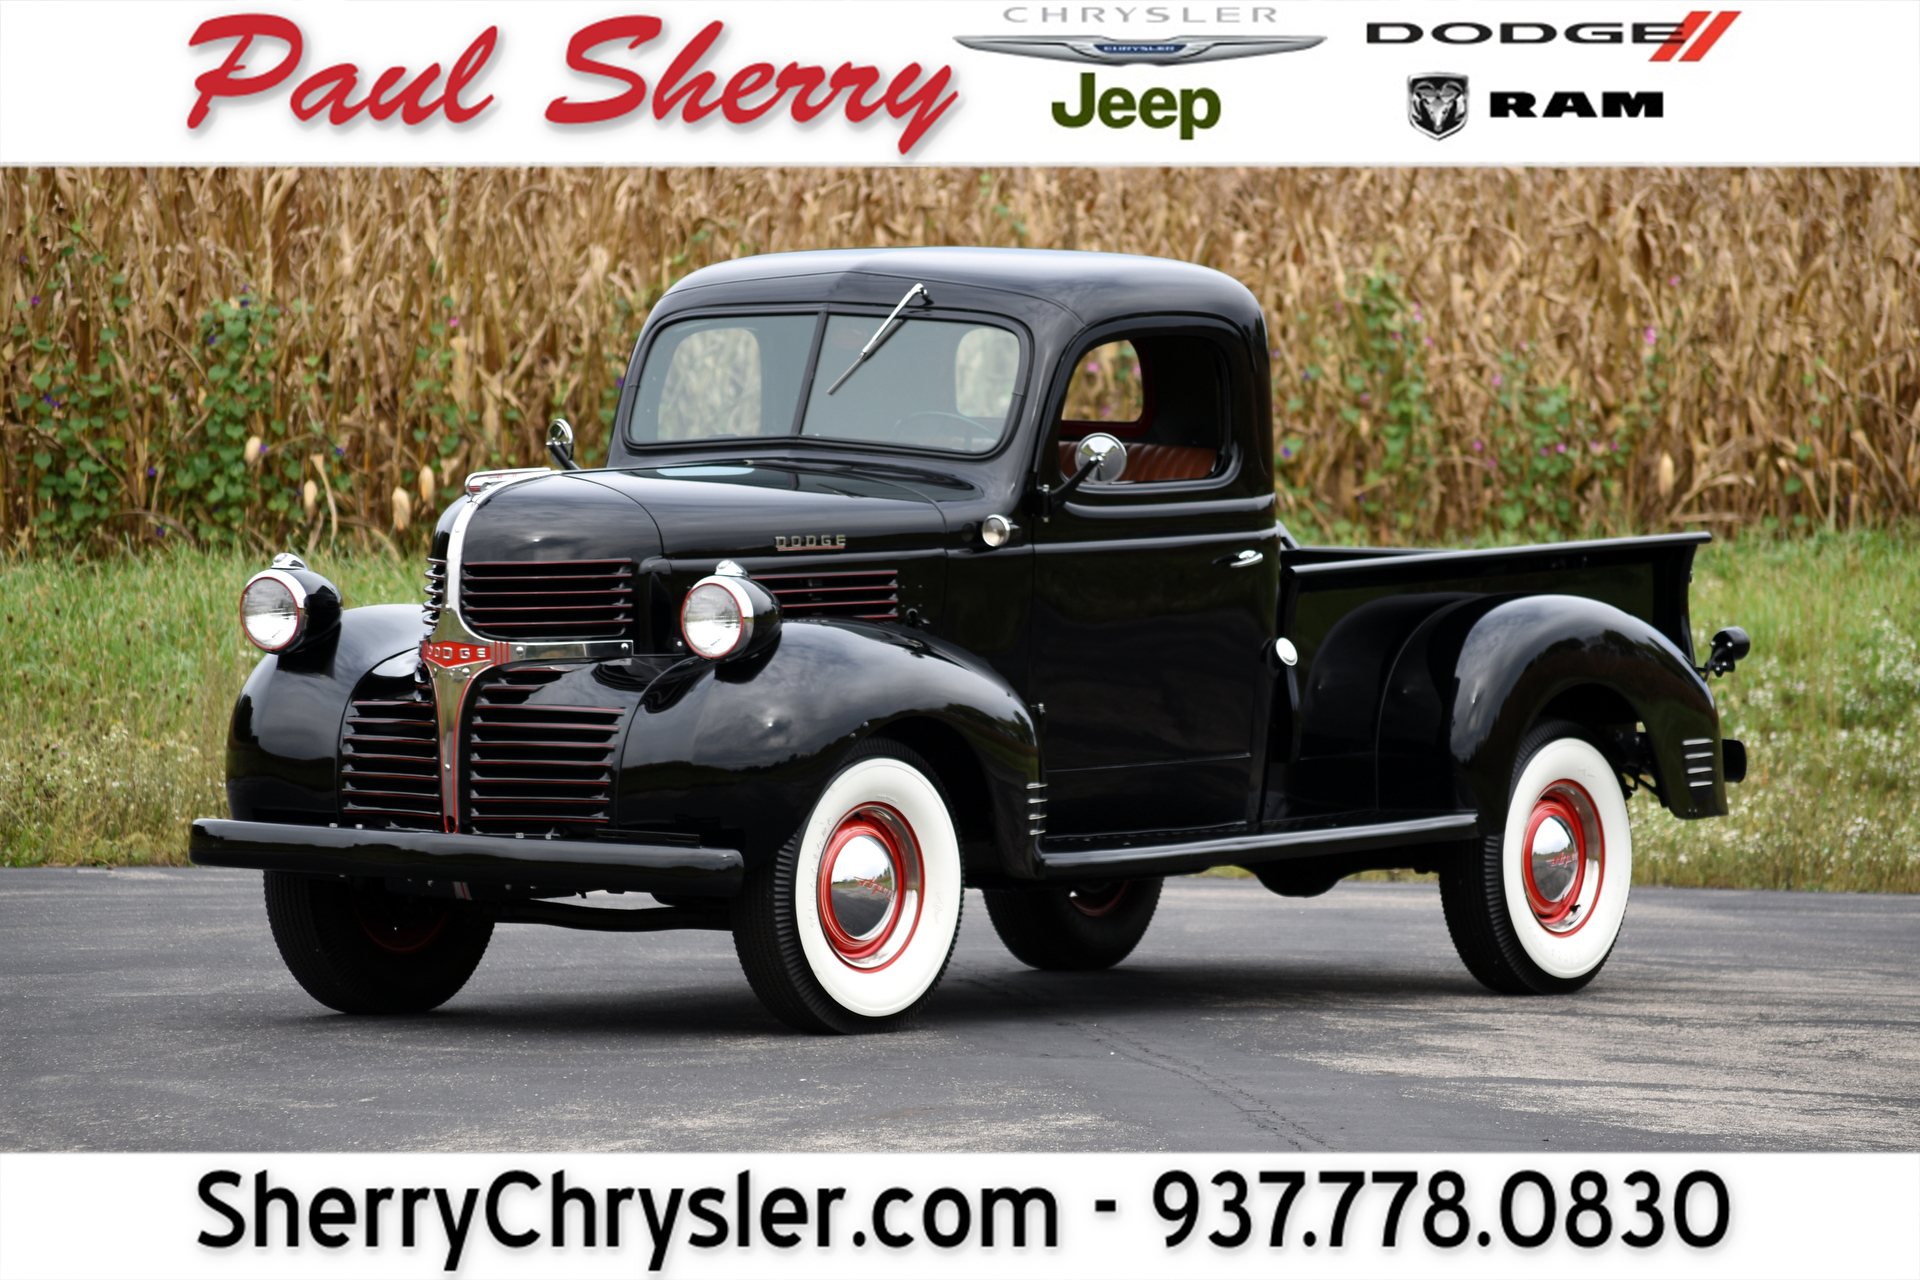 1947 Dodge WD-20 | CP15813T | Paul Sherry Chrysler Dodge Jeep RAM